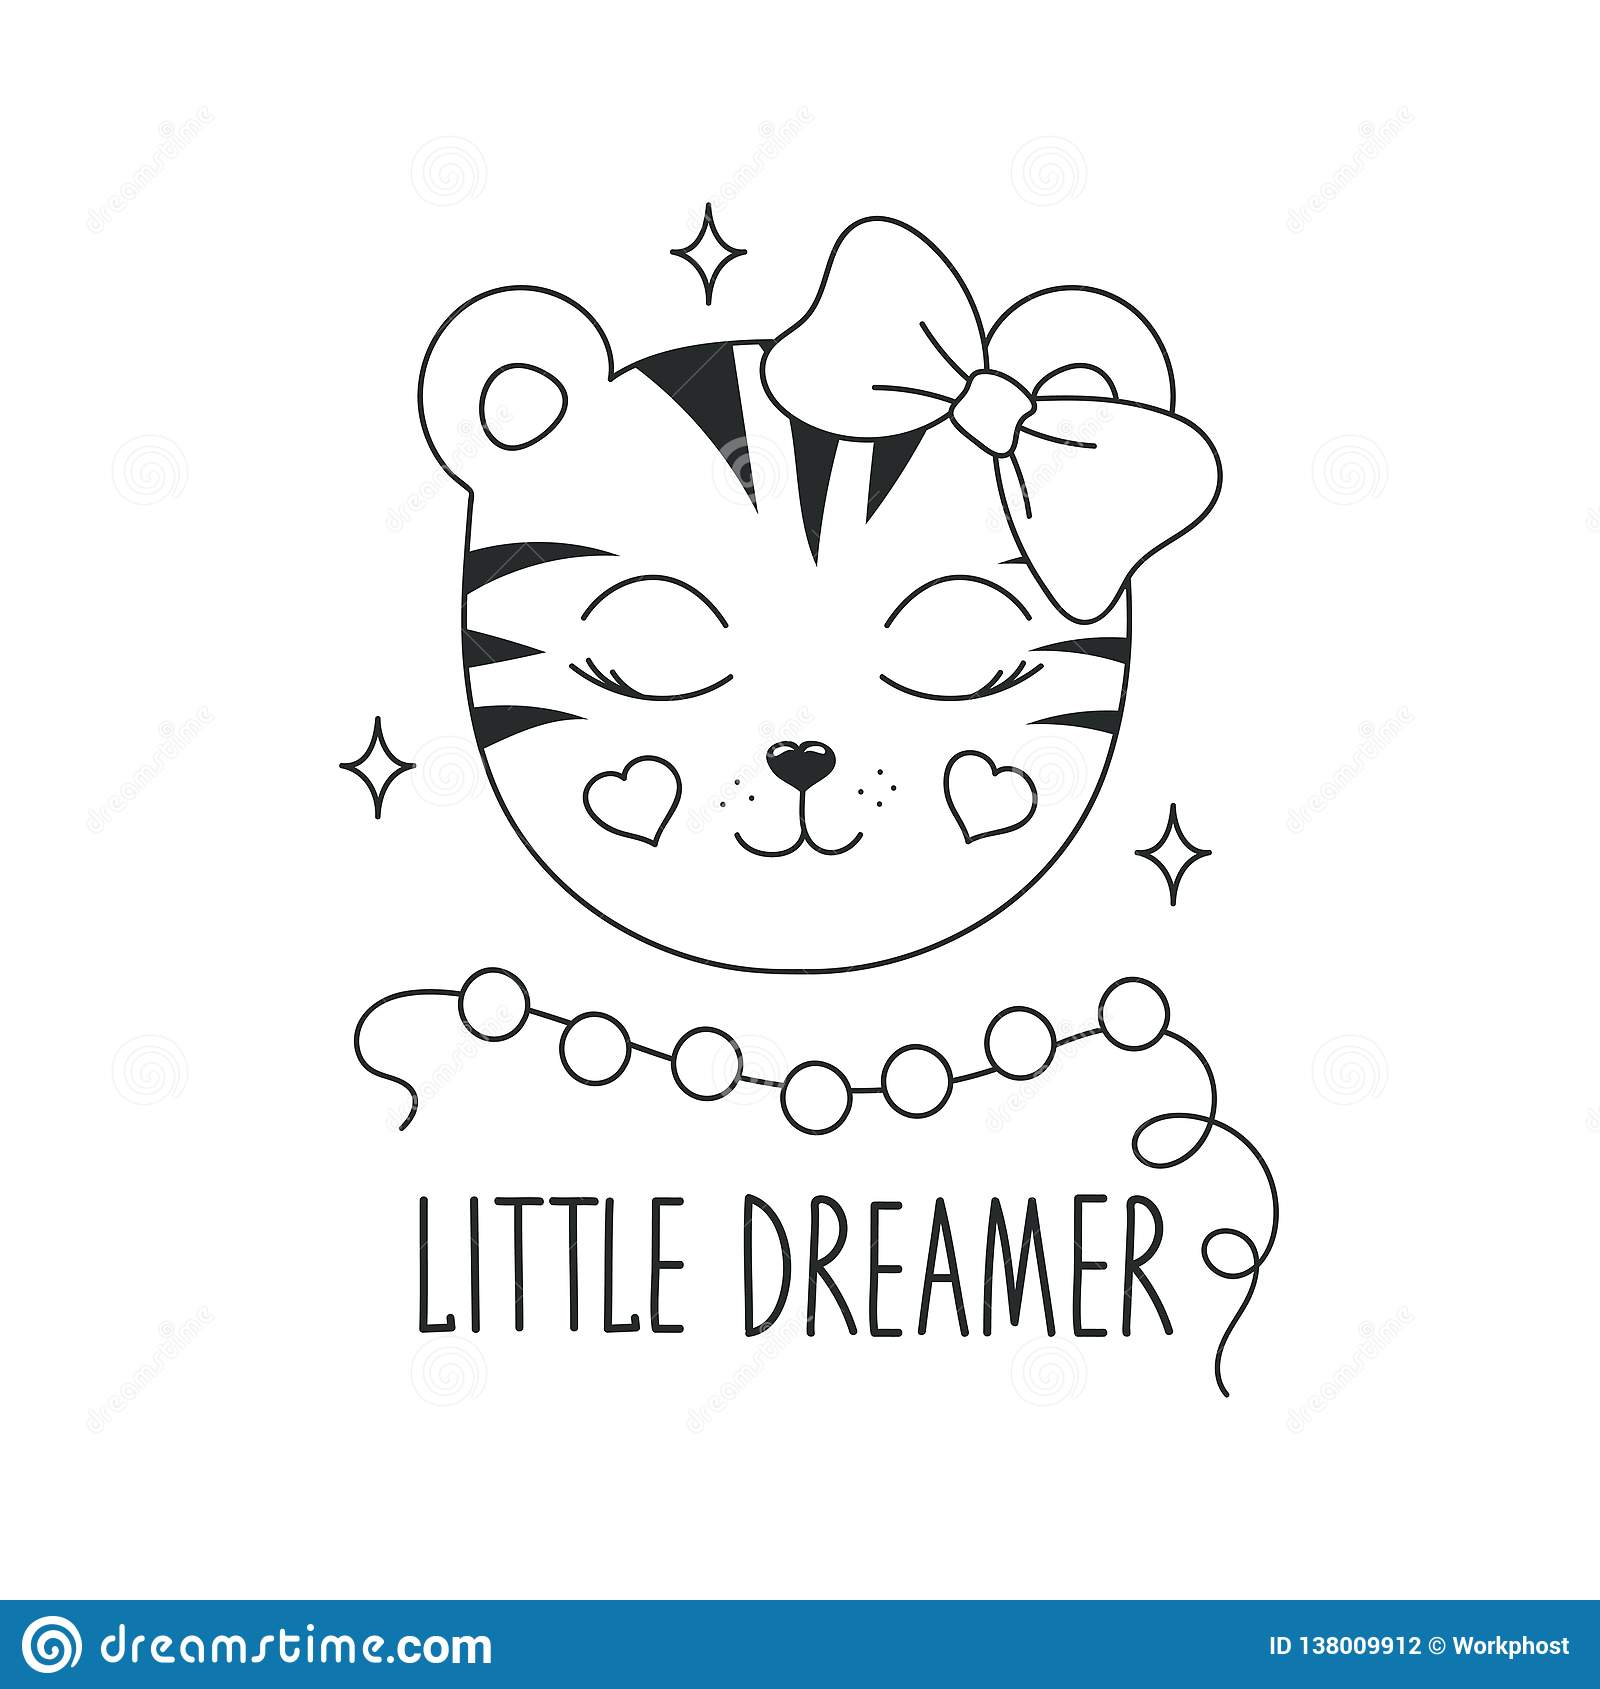 Cute Tiger Illustration Little Dreamer Text Design For Kids Fashion Illustration Drawing In Modern Style For Clothes Girlish Stock Illustration Illustration Of Cute Coloring 138009912